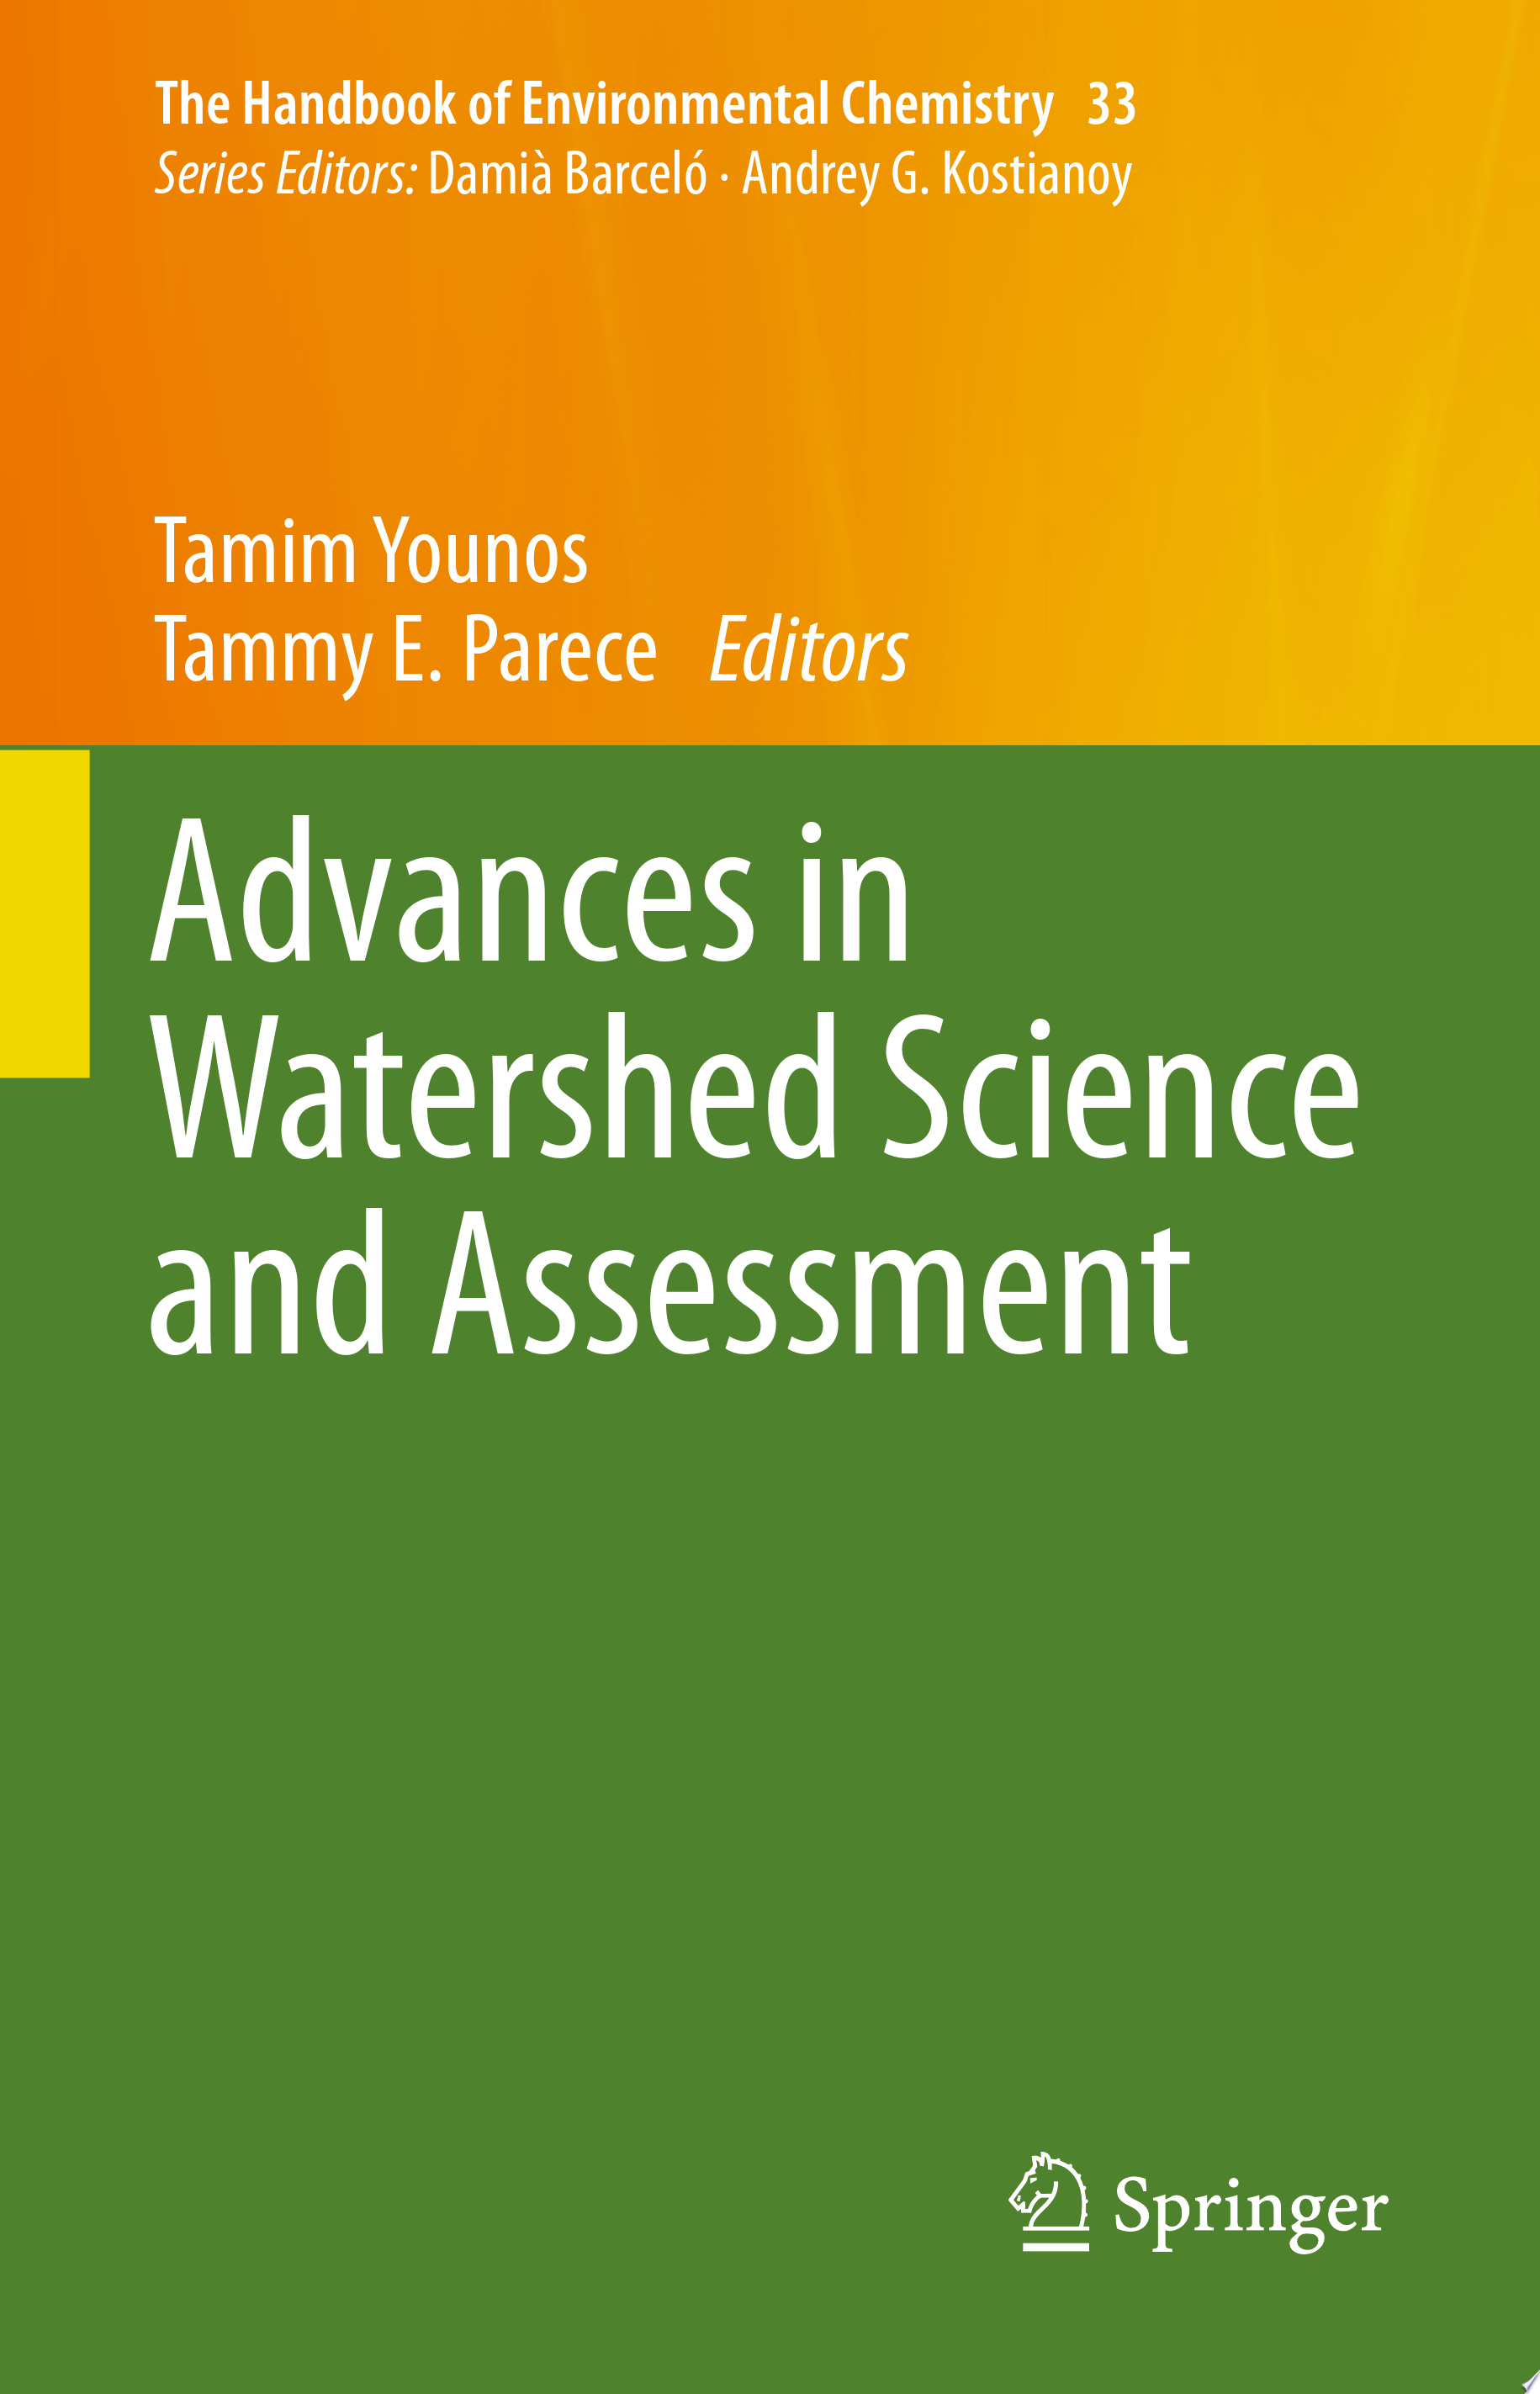 Advances in Watershed Science and Assessment